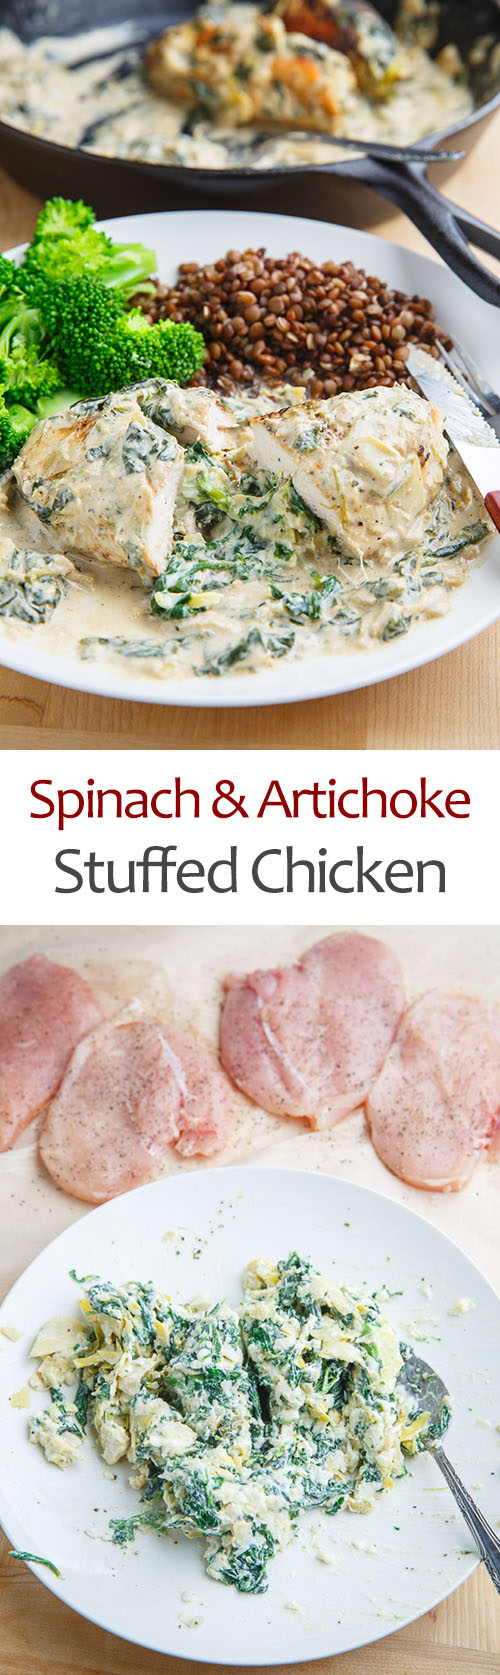 Spinach and Artichoke Stuffed Chicken